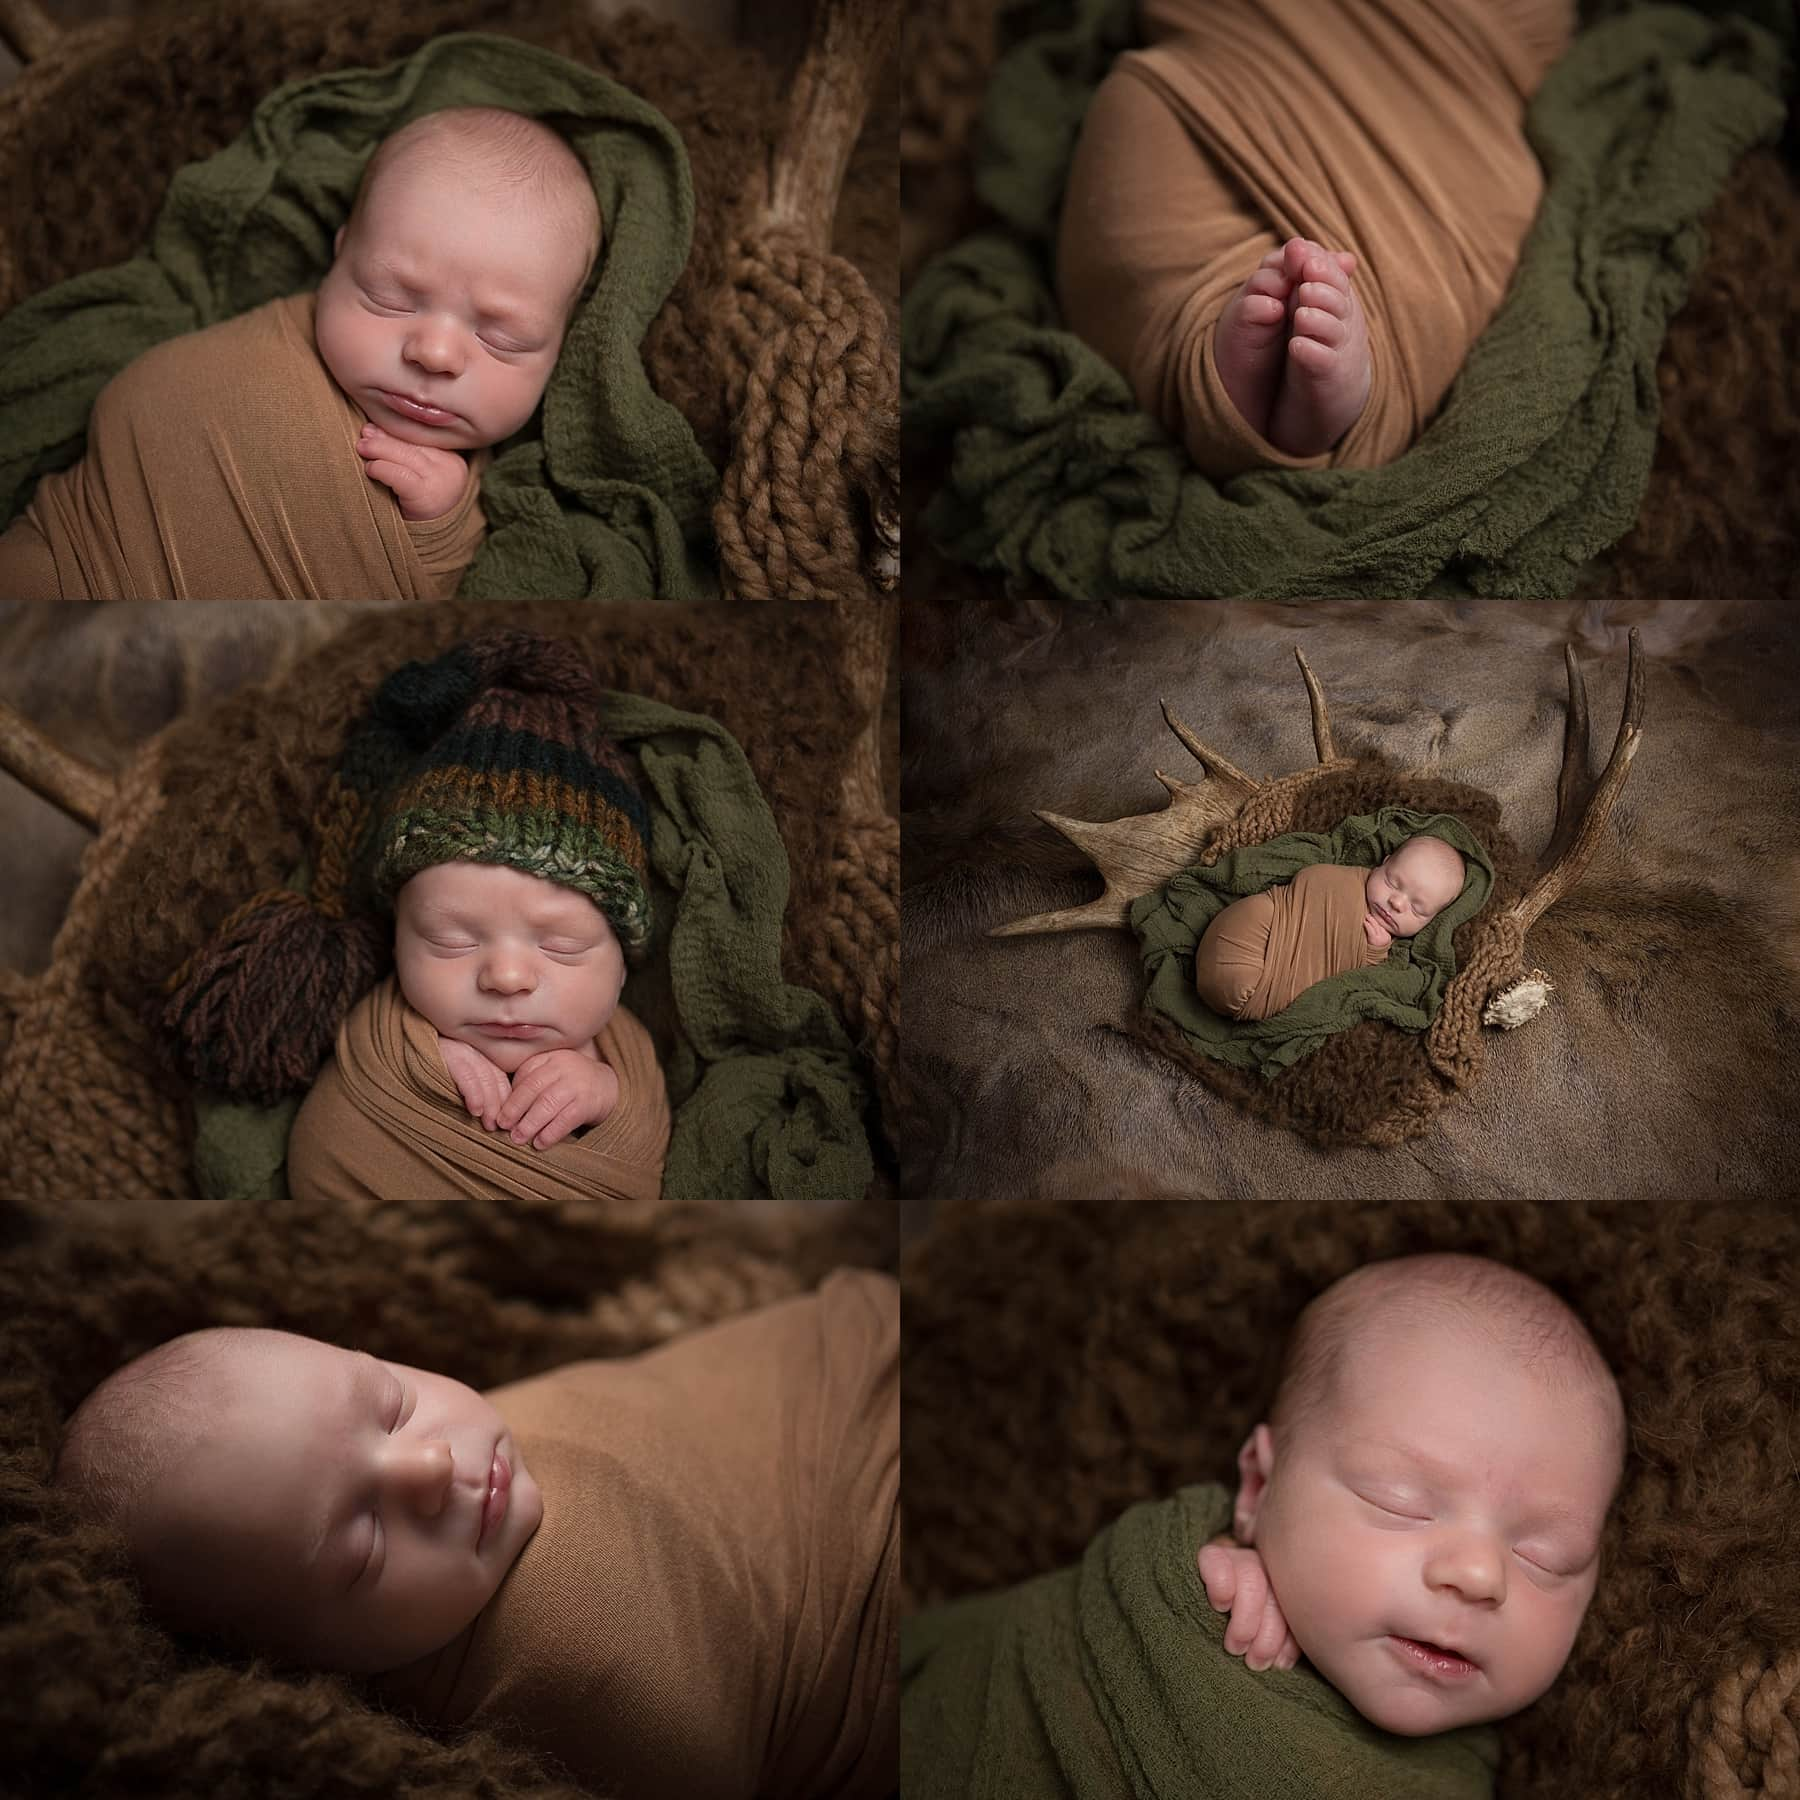 baby boy newborn photo session at home in San Antonio, Texas